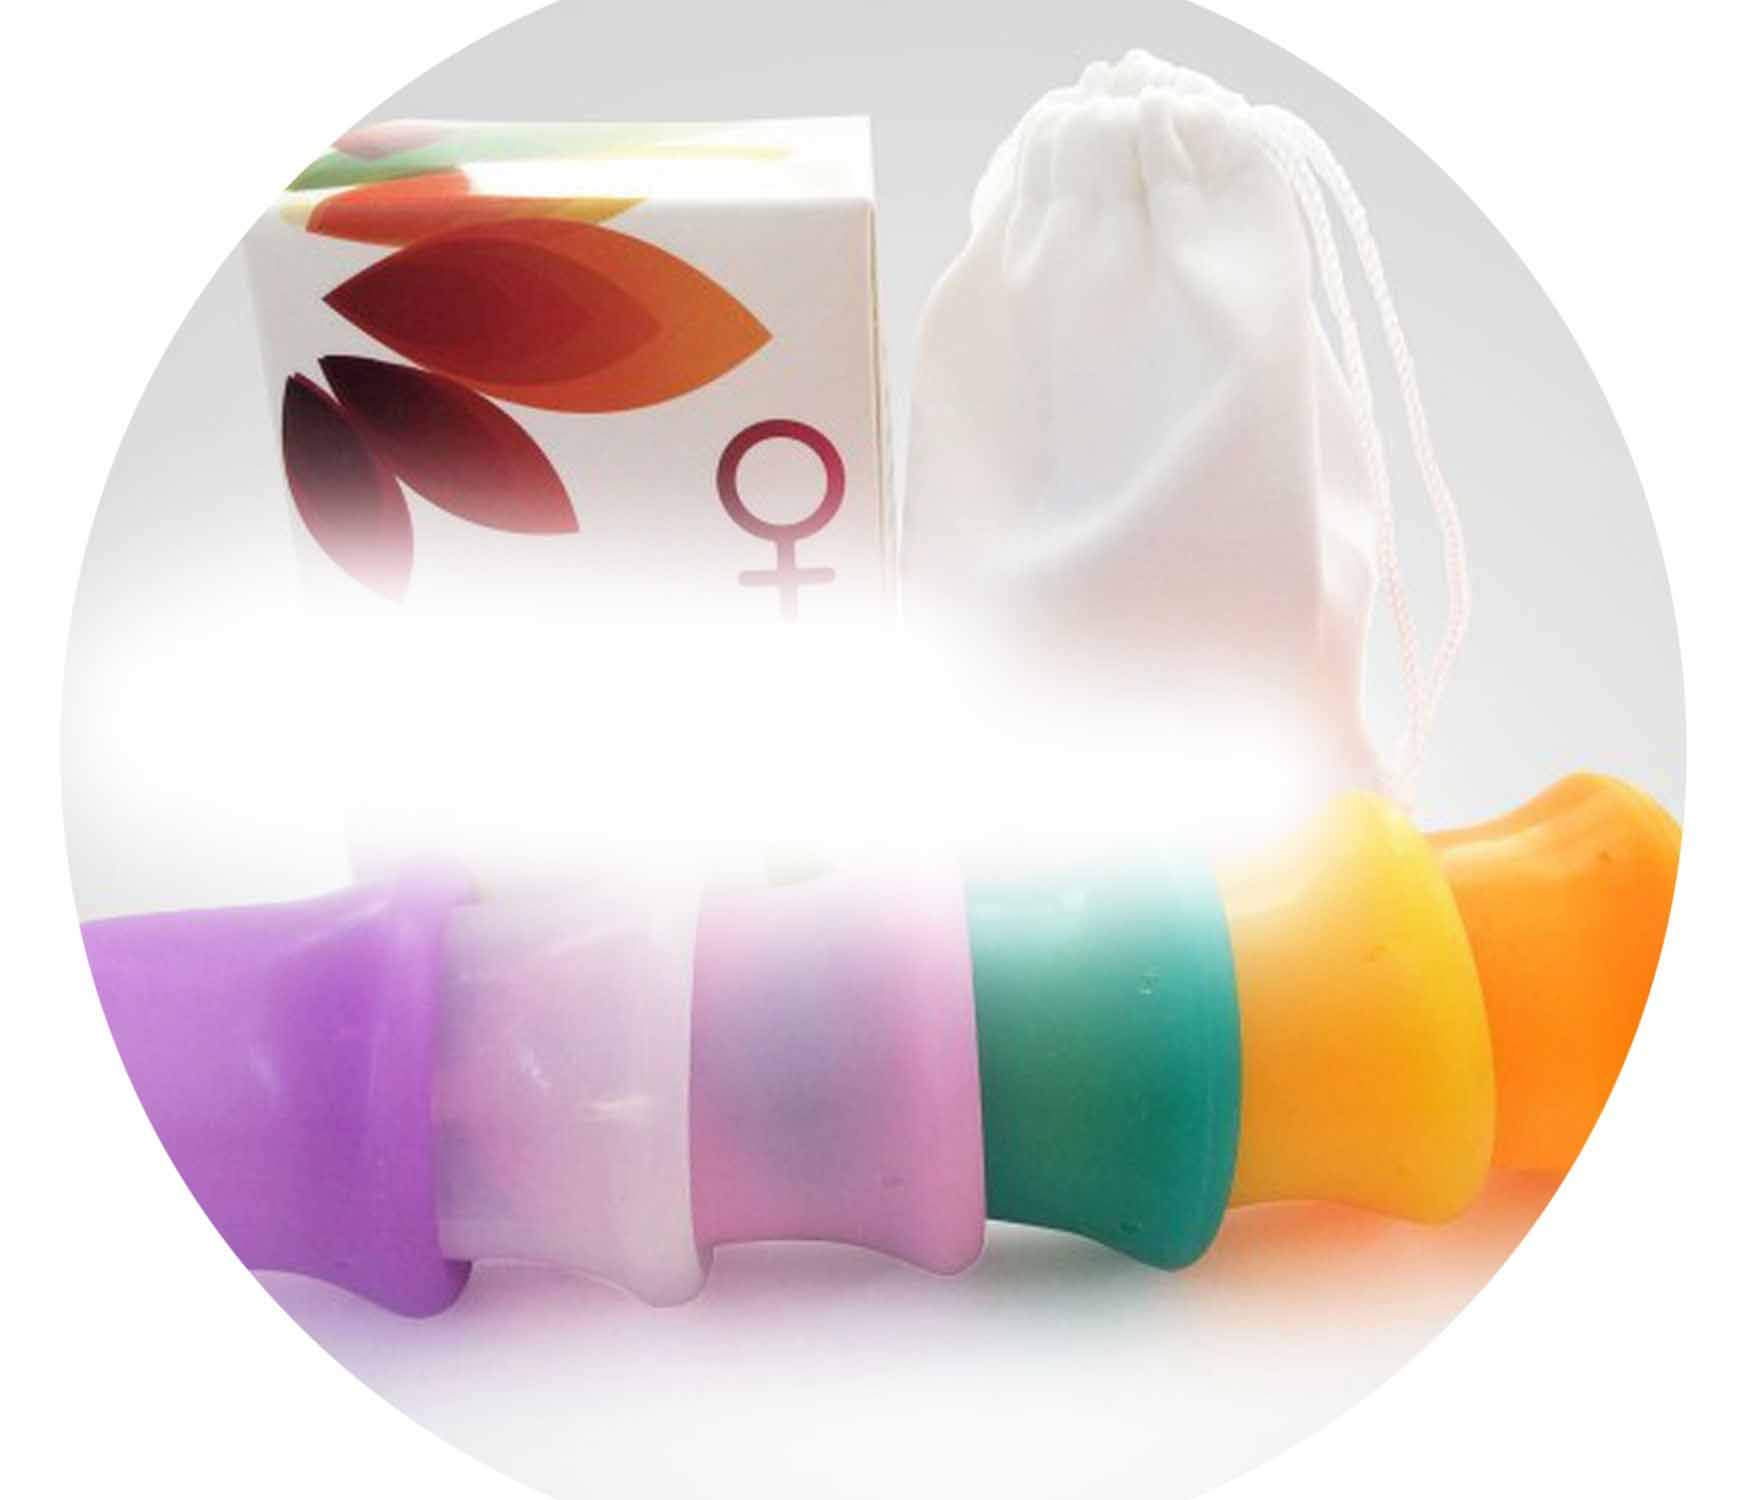 200pcs New Arriving Reusable Grade Silicone Menstrual Cup/y Cup Feminine Hygiene Product for Femcup 6 crs Choose